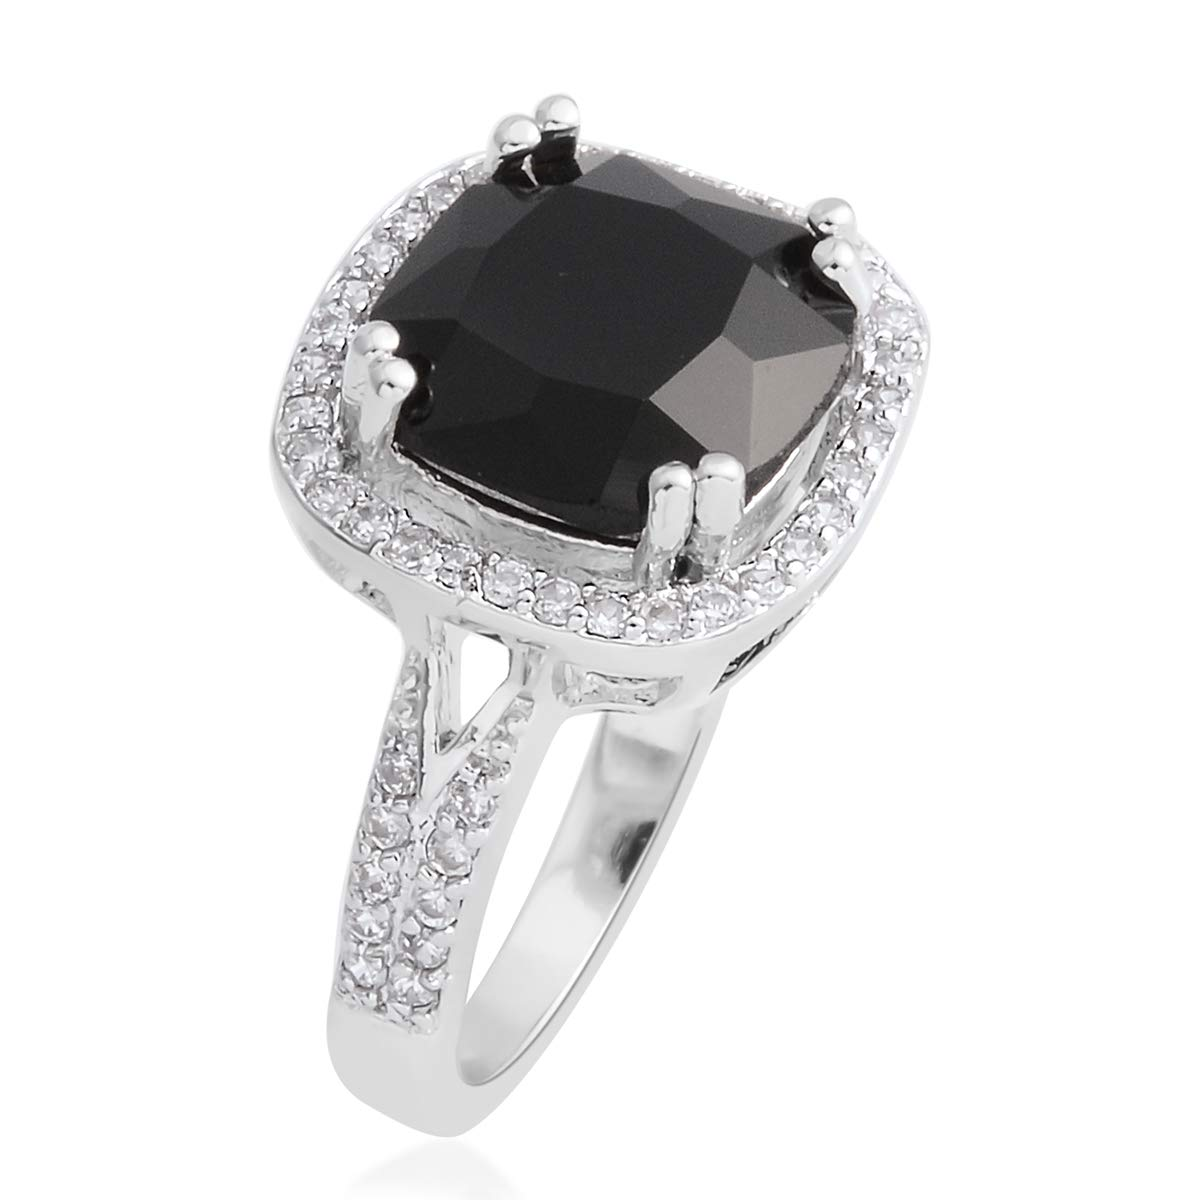 Shop LC Delivering Joy Cushion Black Cubic Zirconia Statement Ring for Women Cttw 4.8 Jewelry Gift